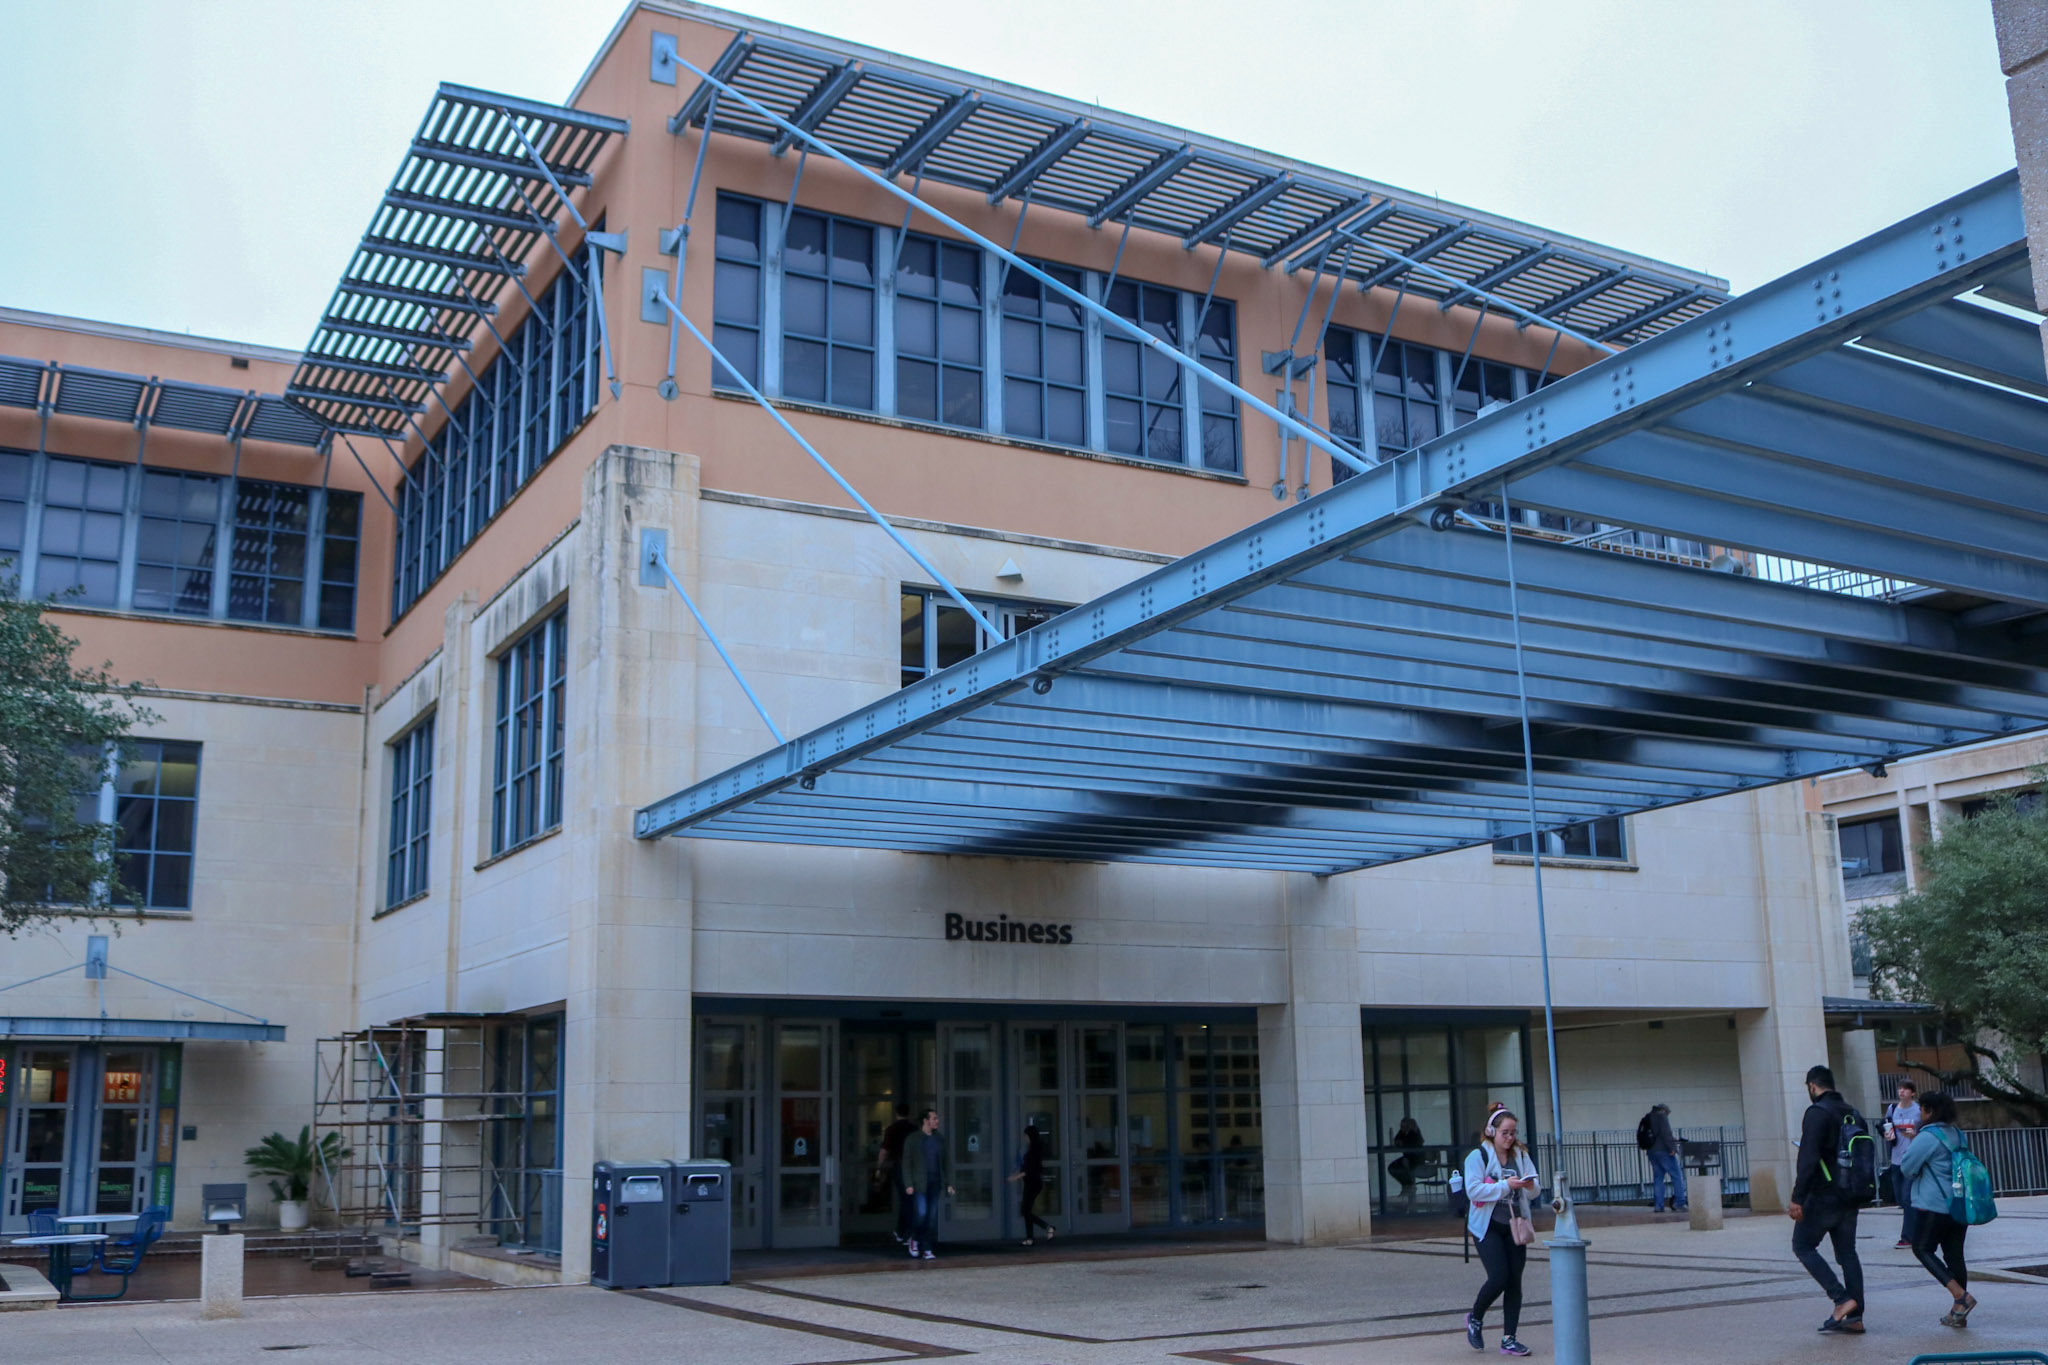 A college of business professor wants a requirement of faculty senate approval.